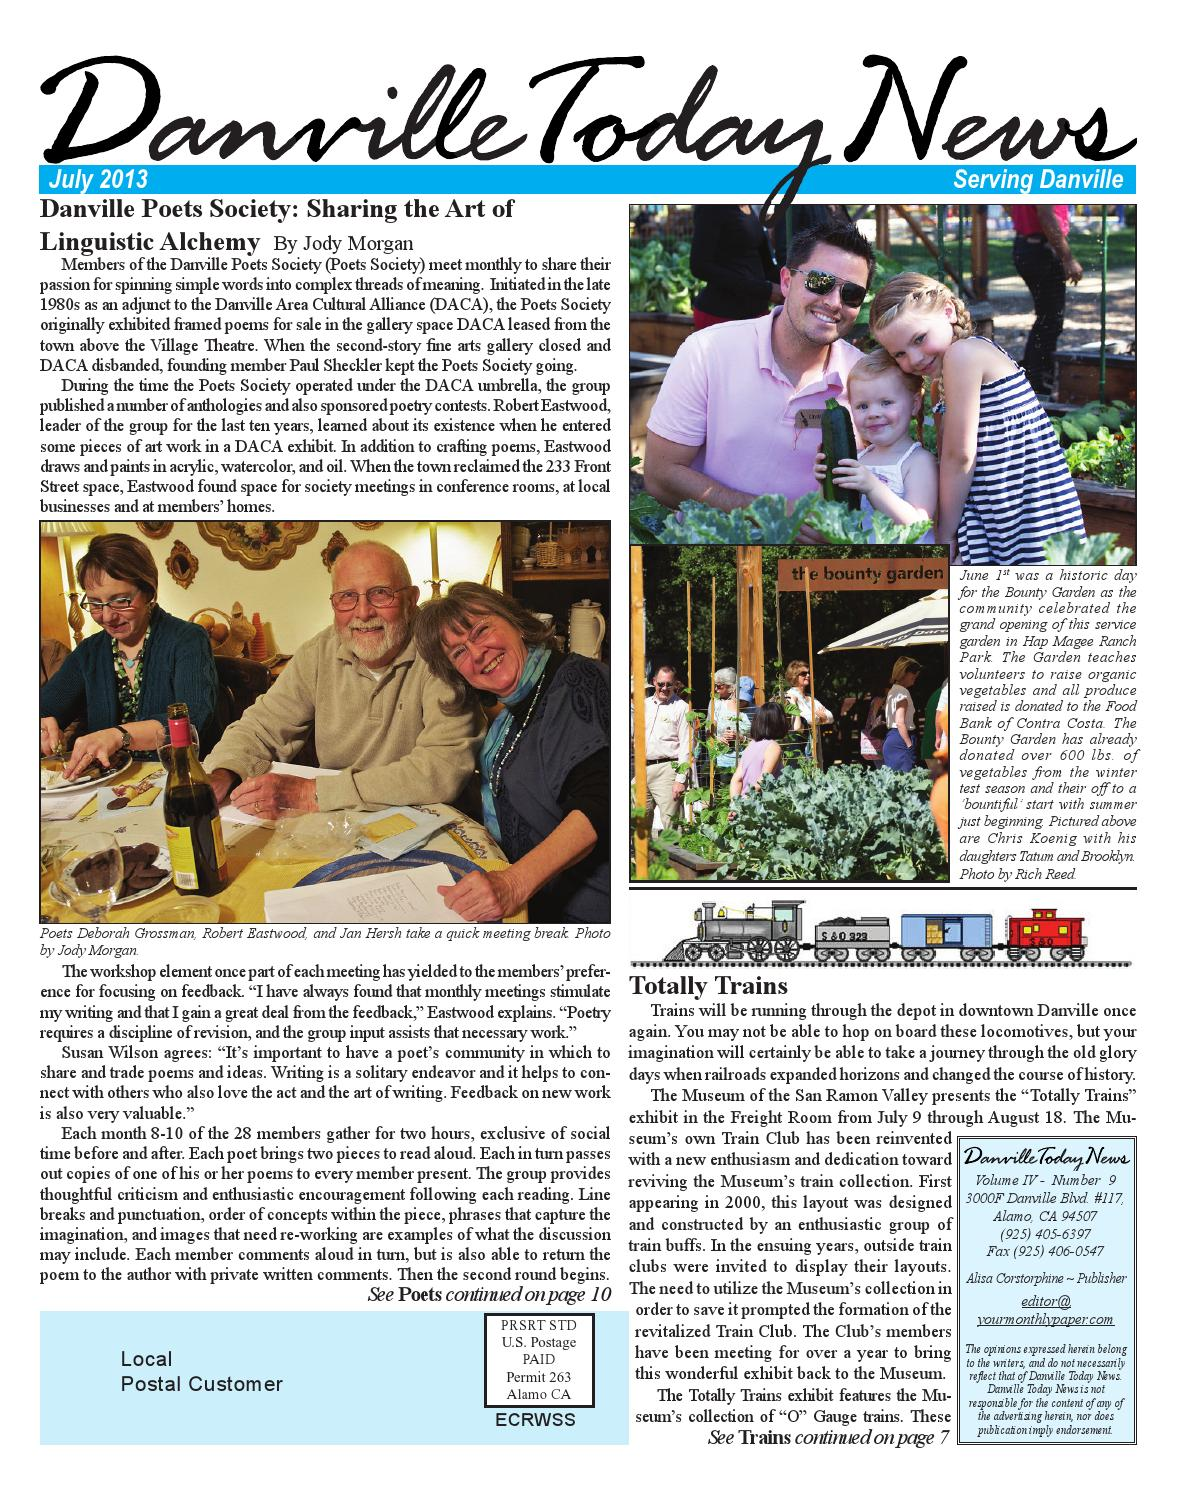 Danville Today News, July 2013  by The Editors, Inc - issuu